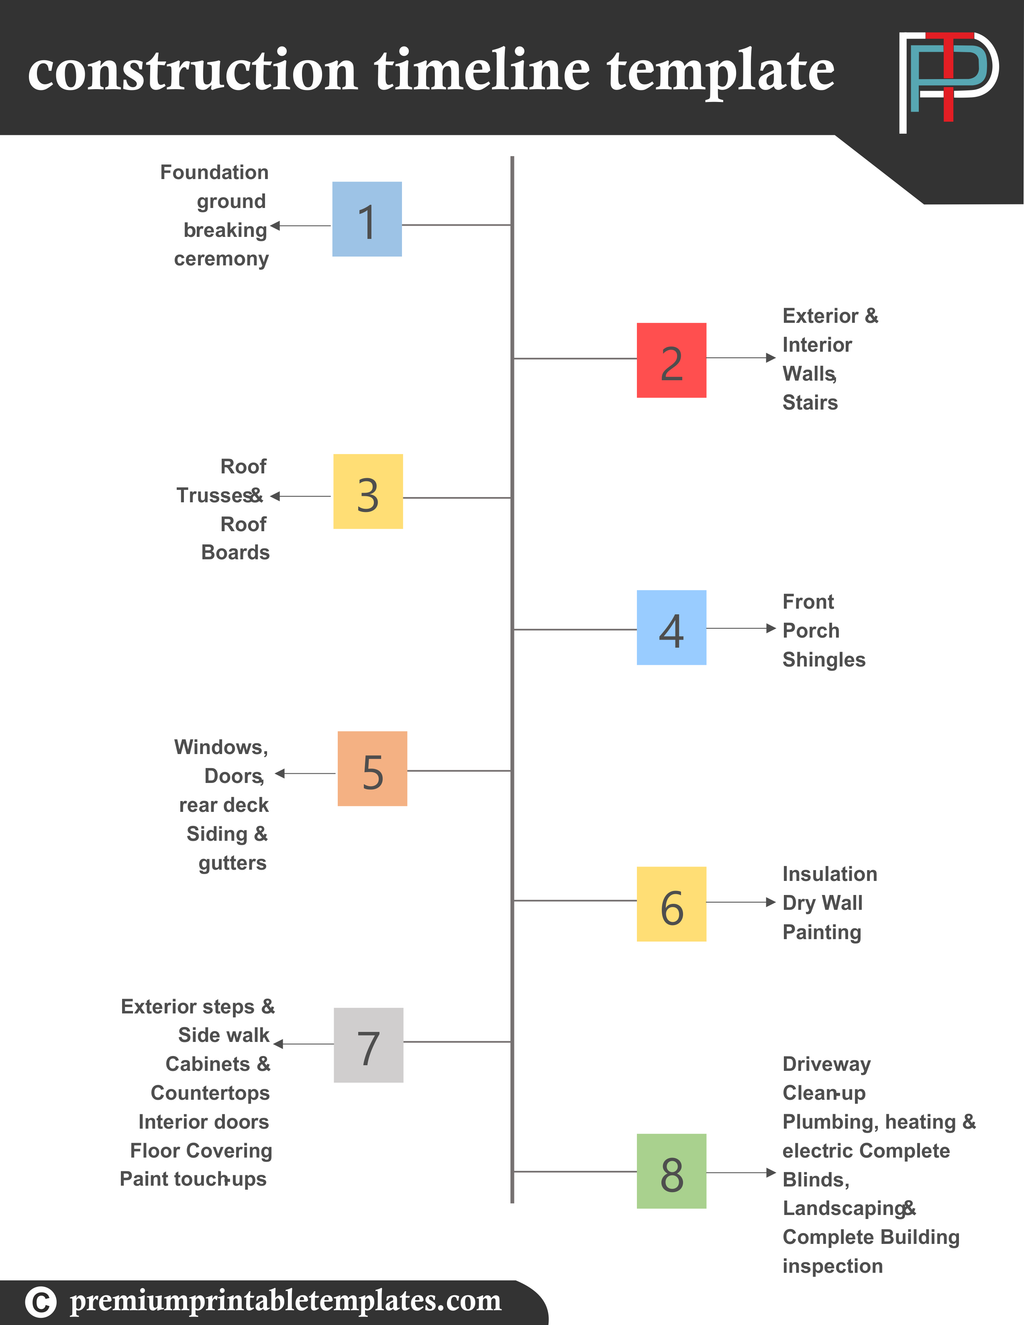 construction timeline template